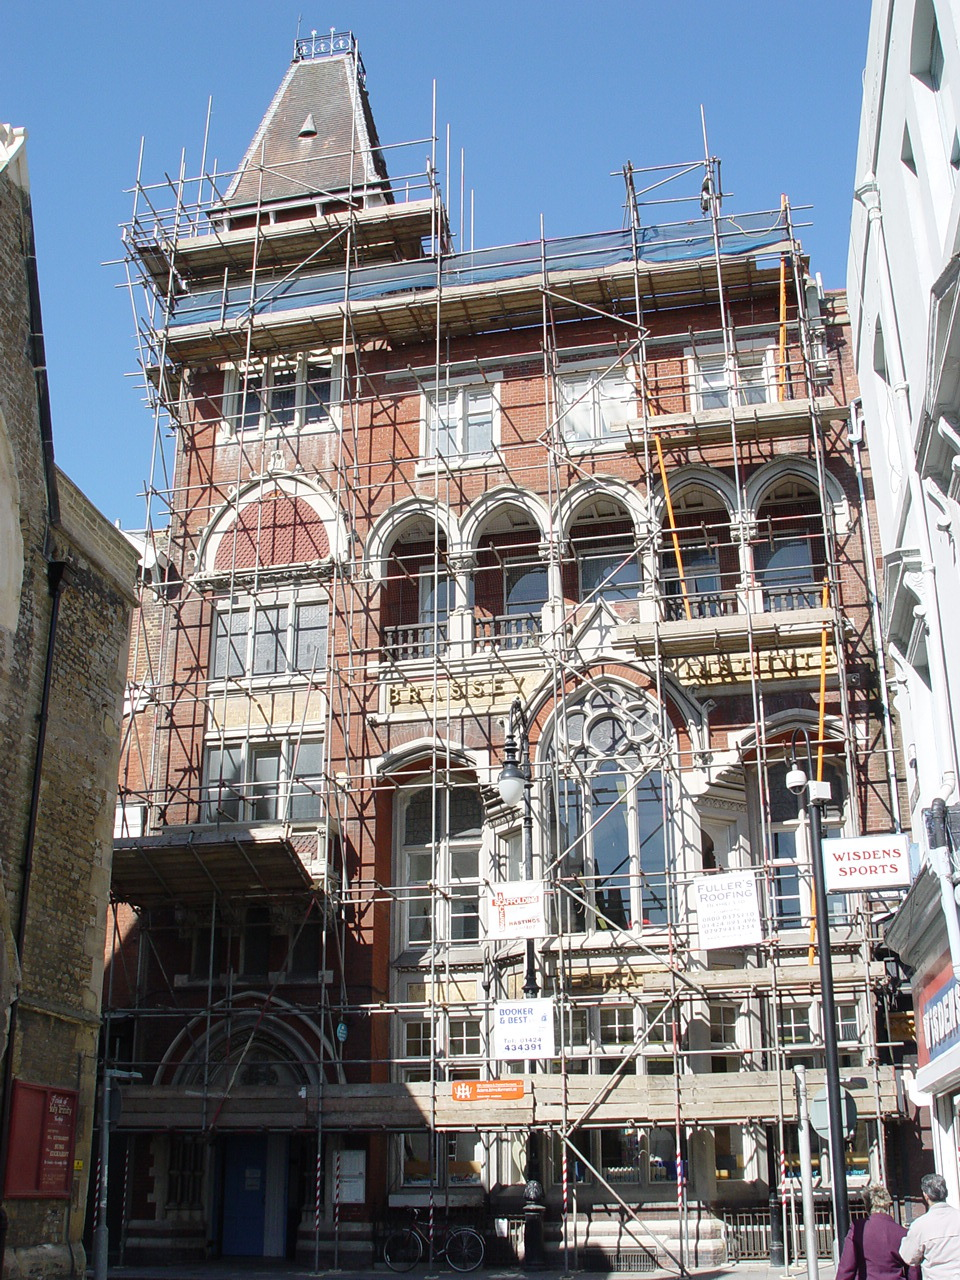 Hastings Library with scaffolding